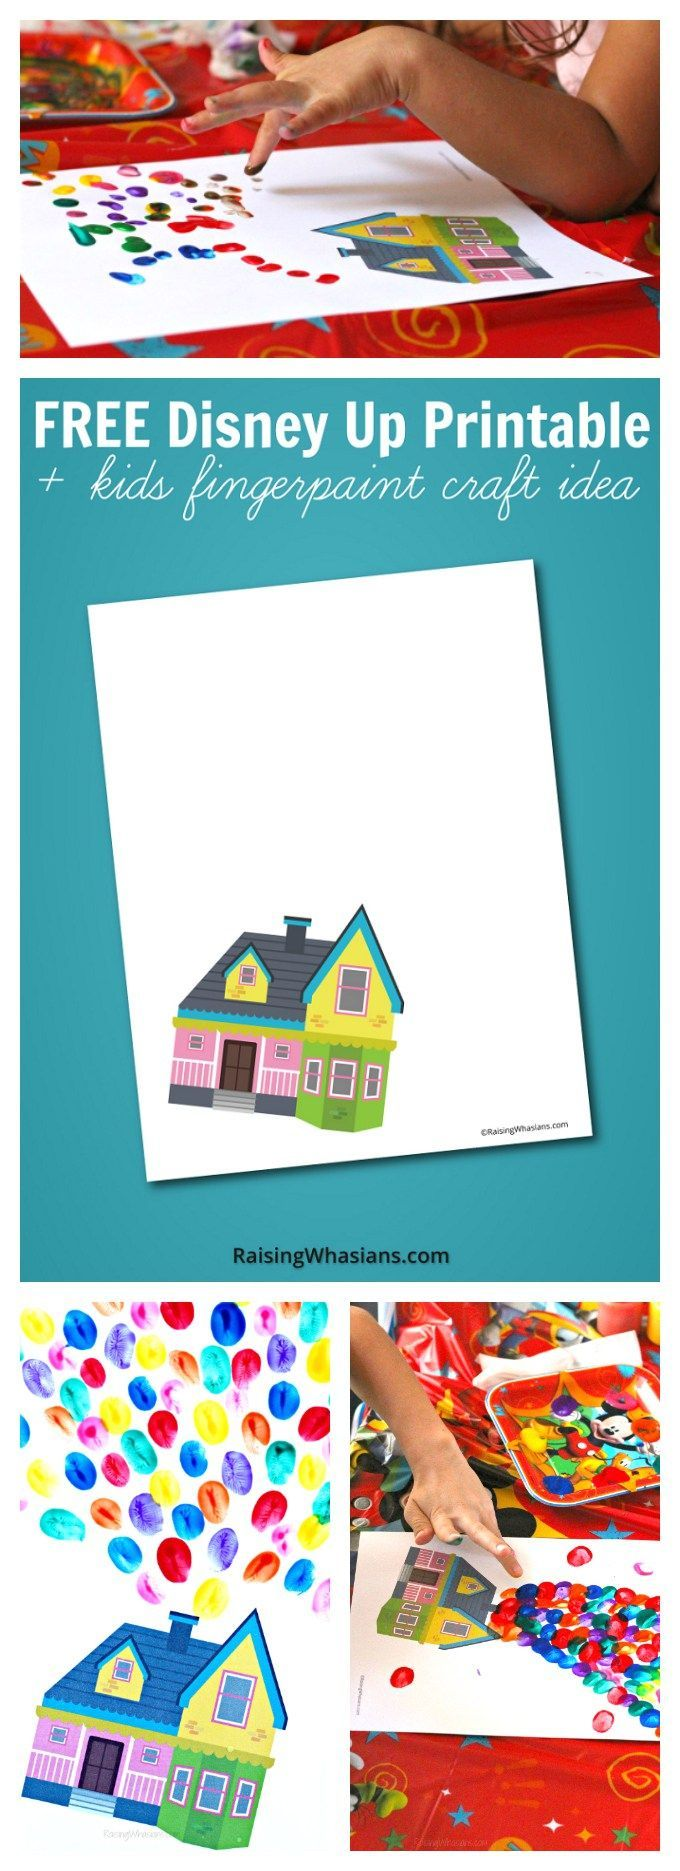 FREE Disney Up Printable + Kids Craft Idea - Raising Whasians